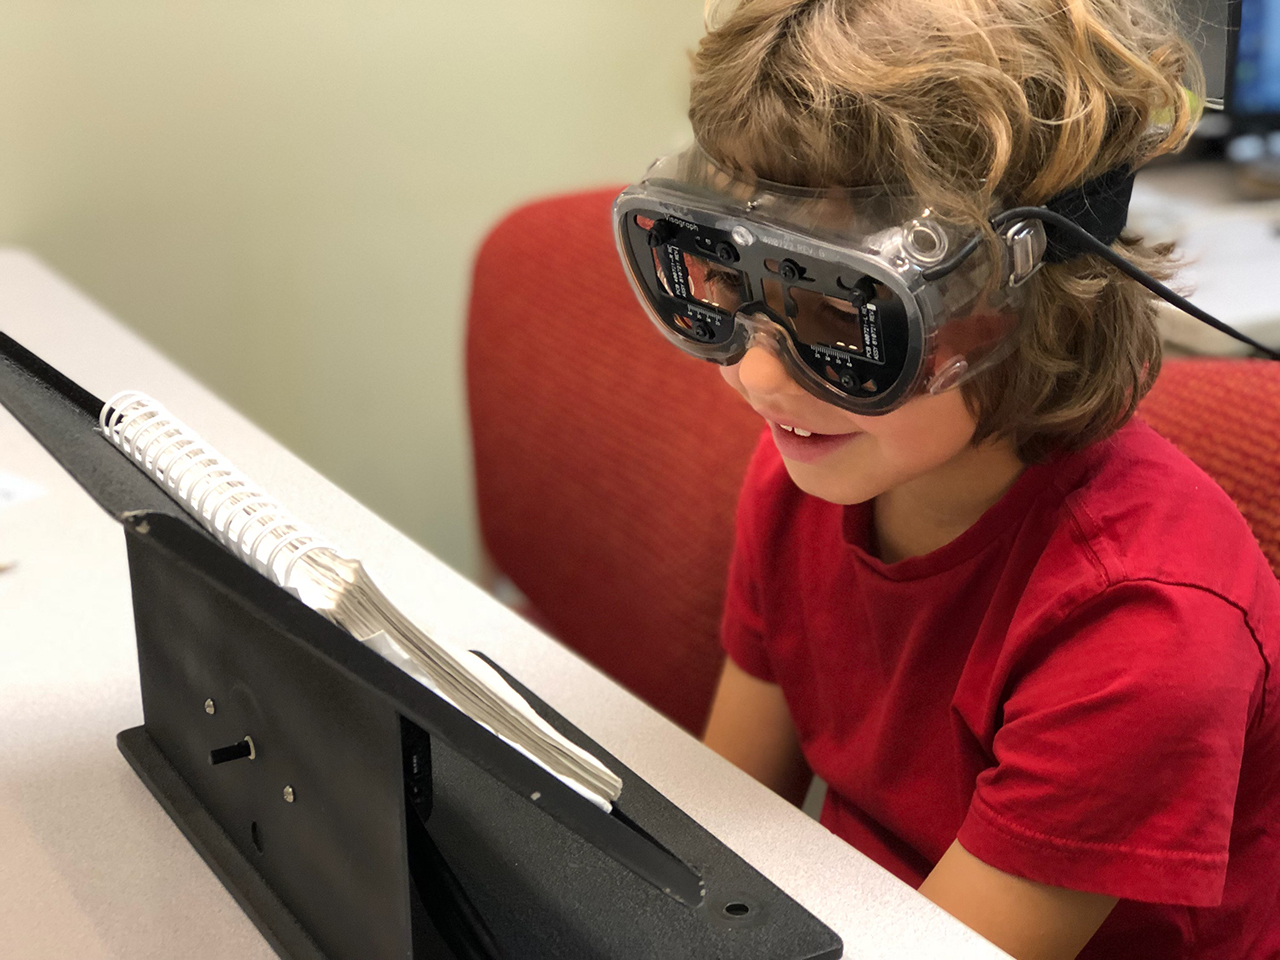 Special Tree Adds Visagraph to Robust Vision Therapy Program for Brain Injury Rehabilitation